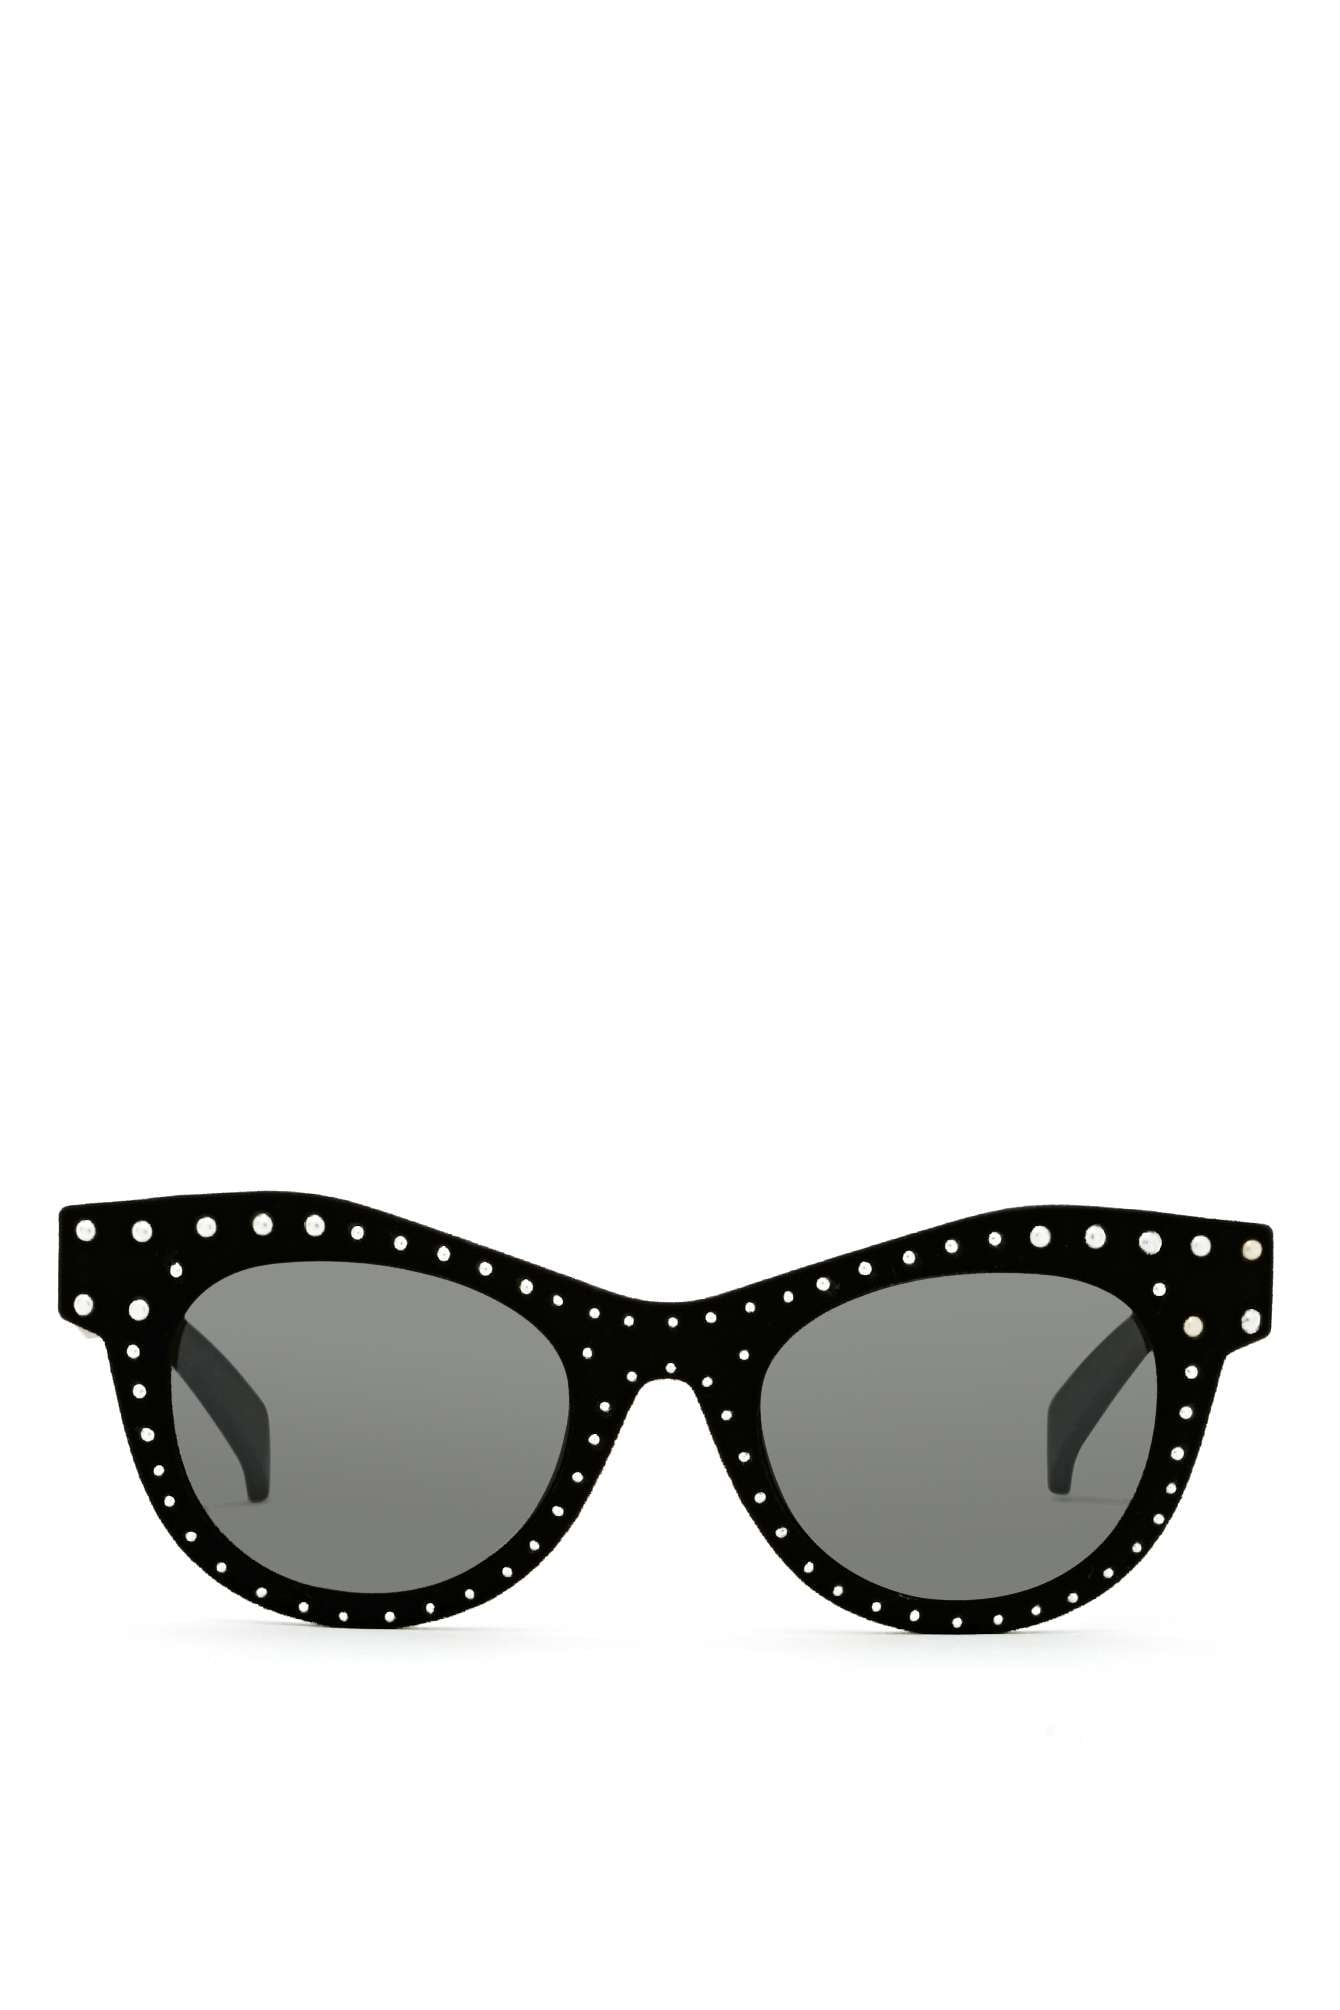 Italia Independent I-V Rock Studded Shades ($227)